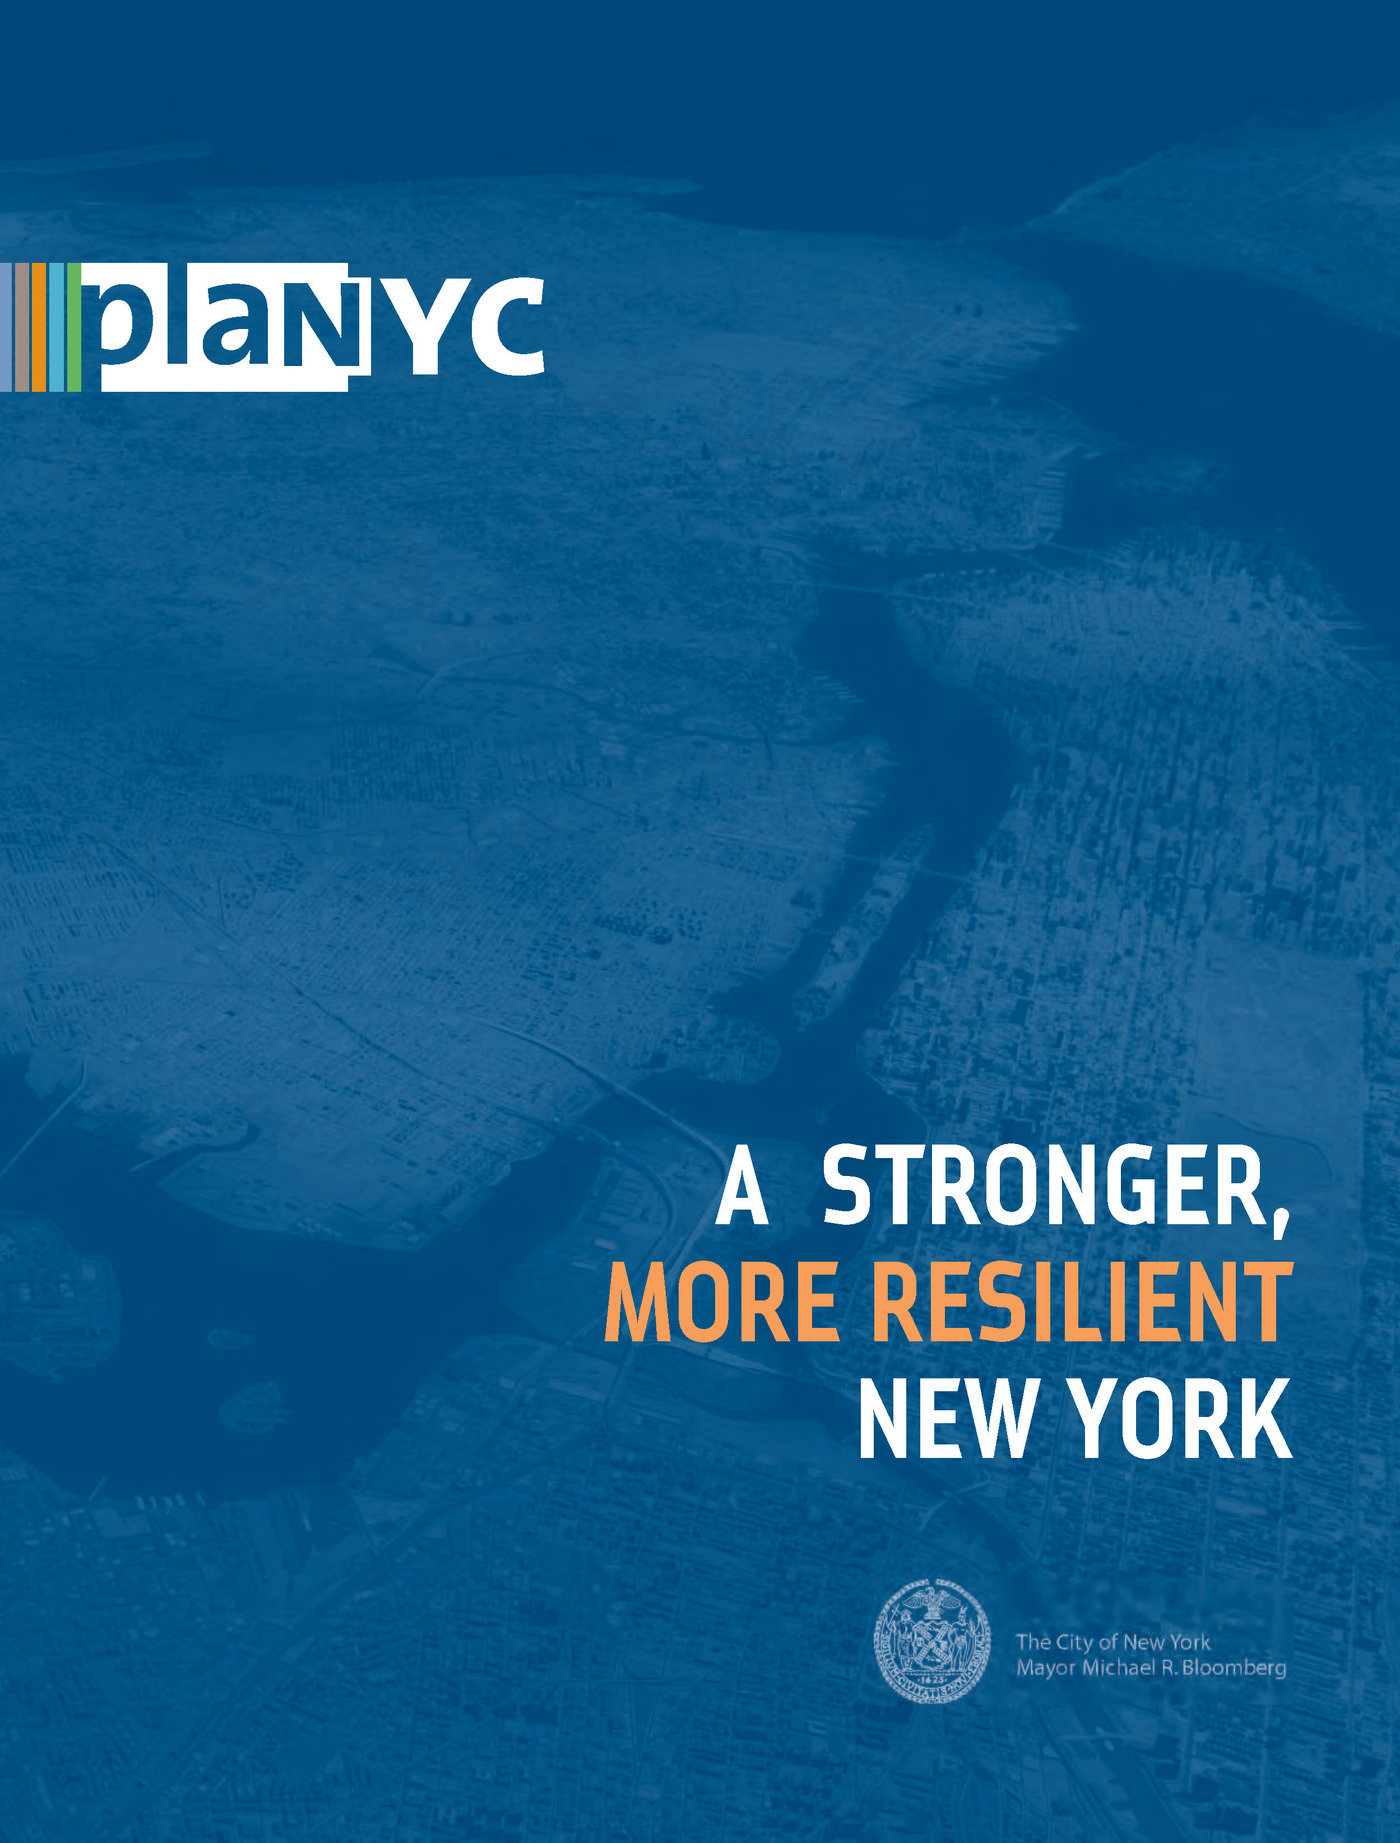 Special Initiative for Rebuilding and Resiliency